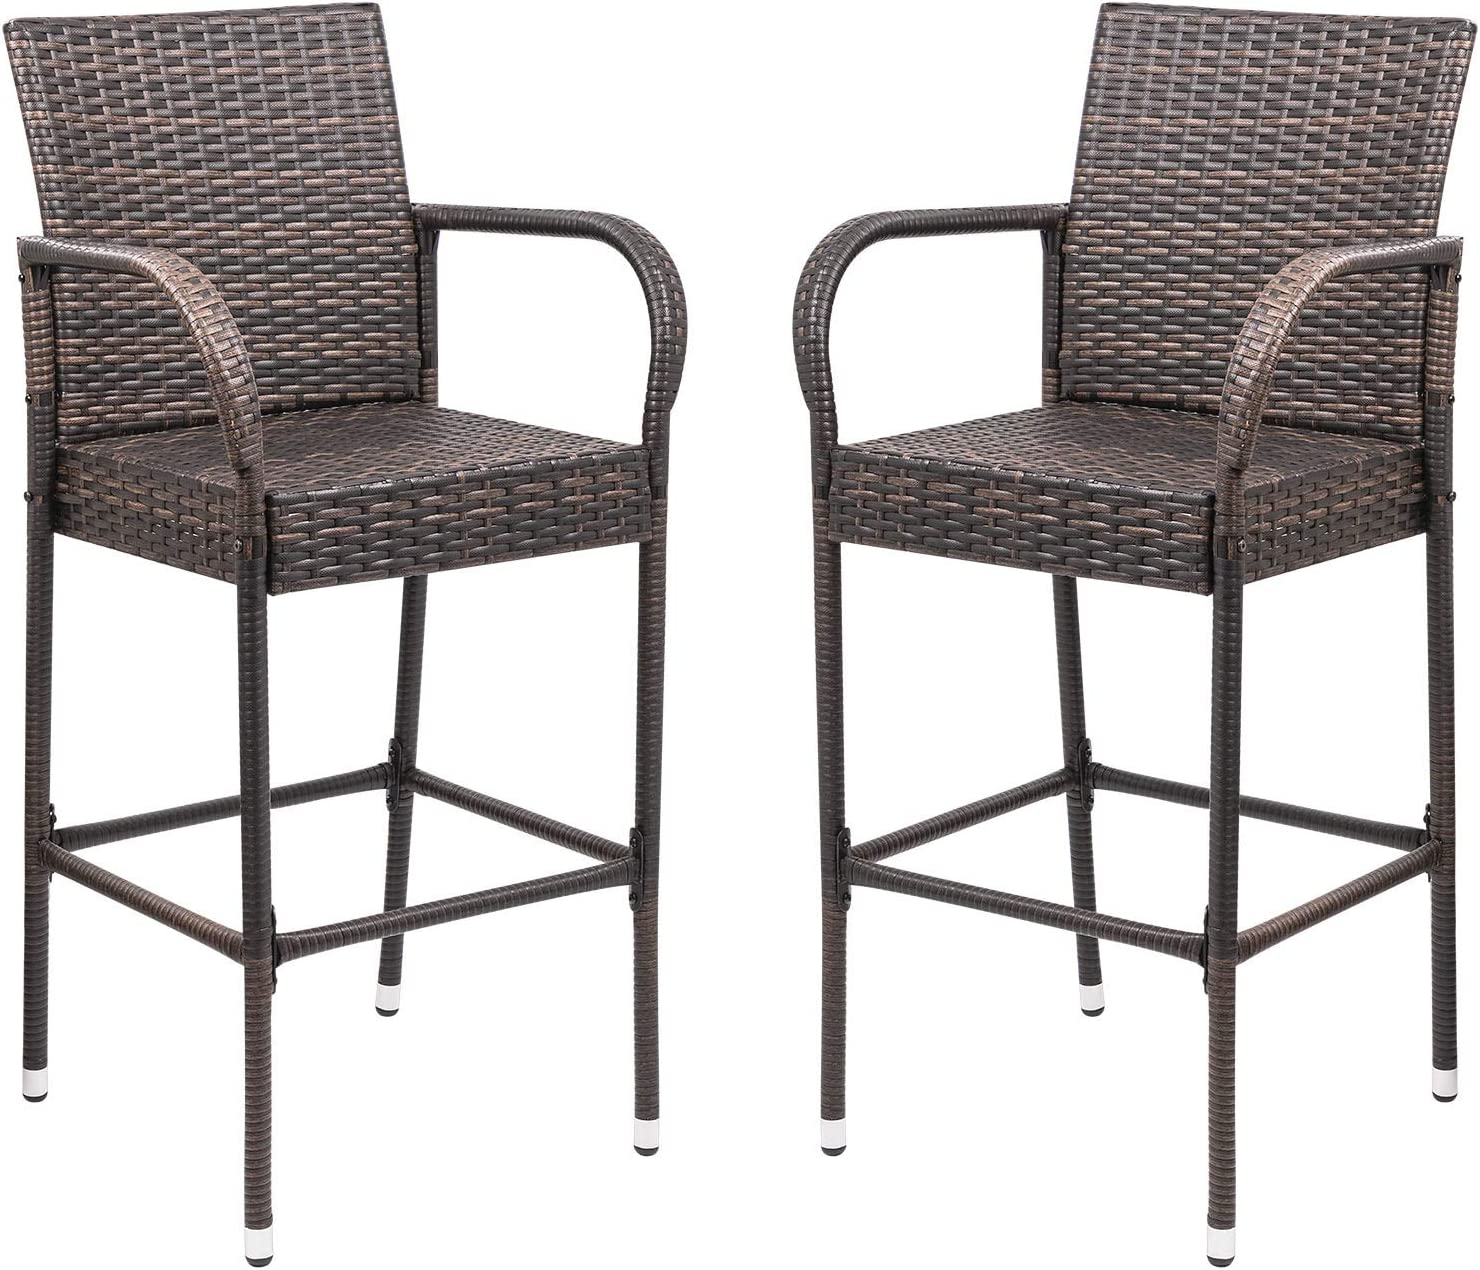 Homall Patio Bar Stools Wicker Barstools Indoor Outdoor Bar Stool Patio  Furniture with Footrest and Armrest for Garden Pool Lawn Backyard Set of 9  ...